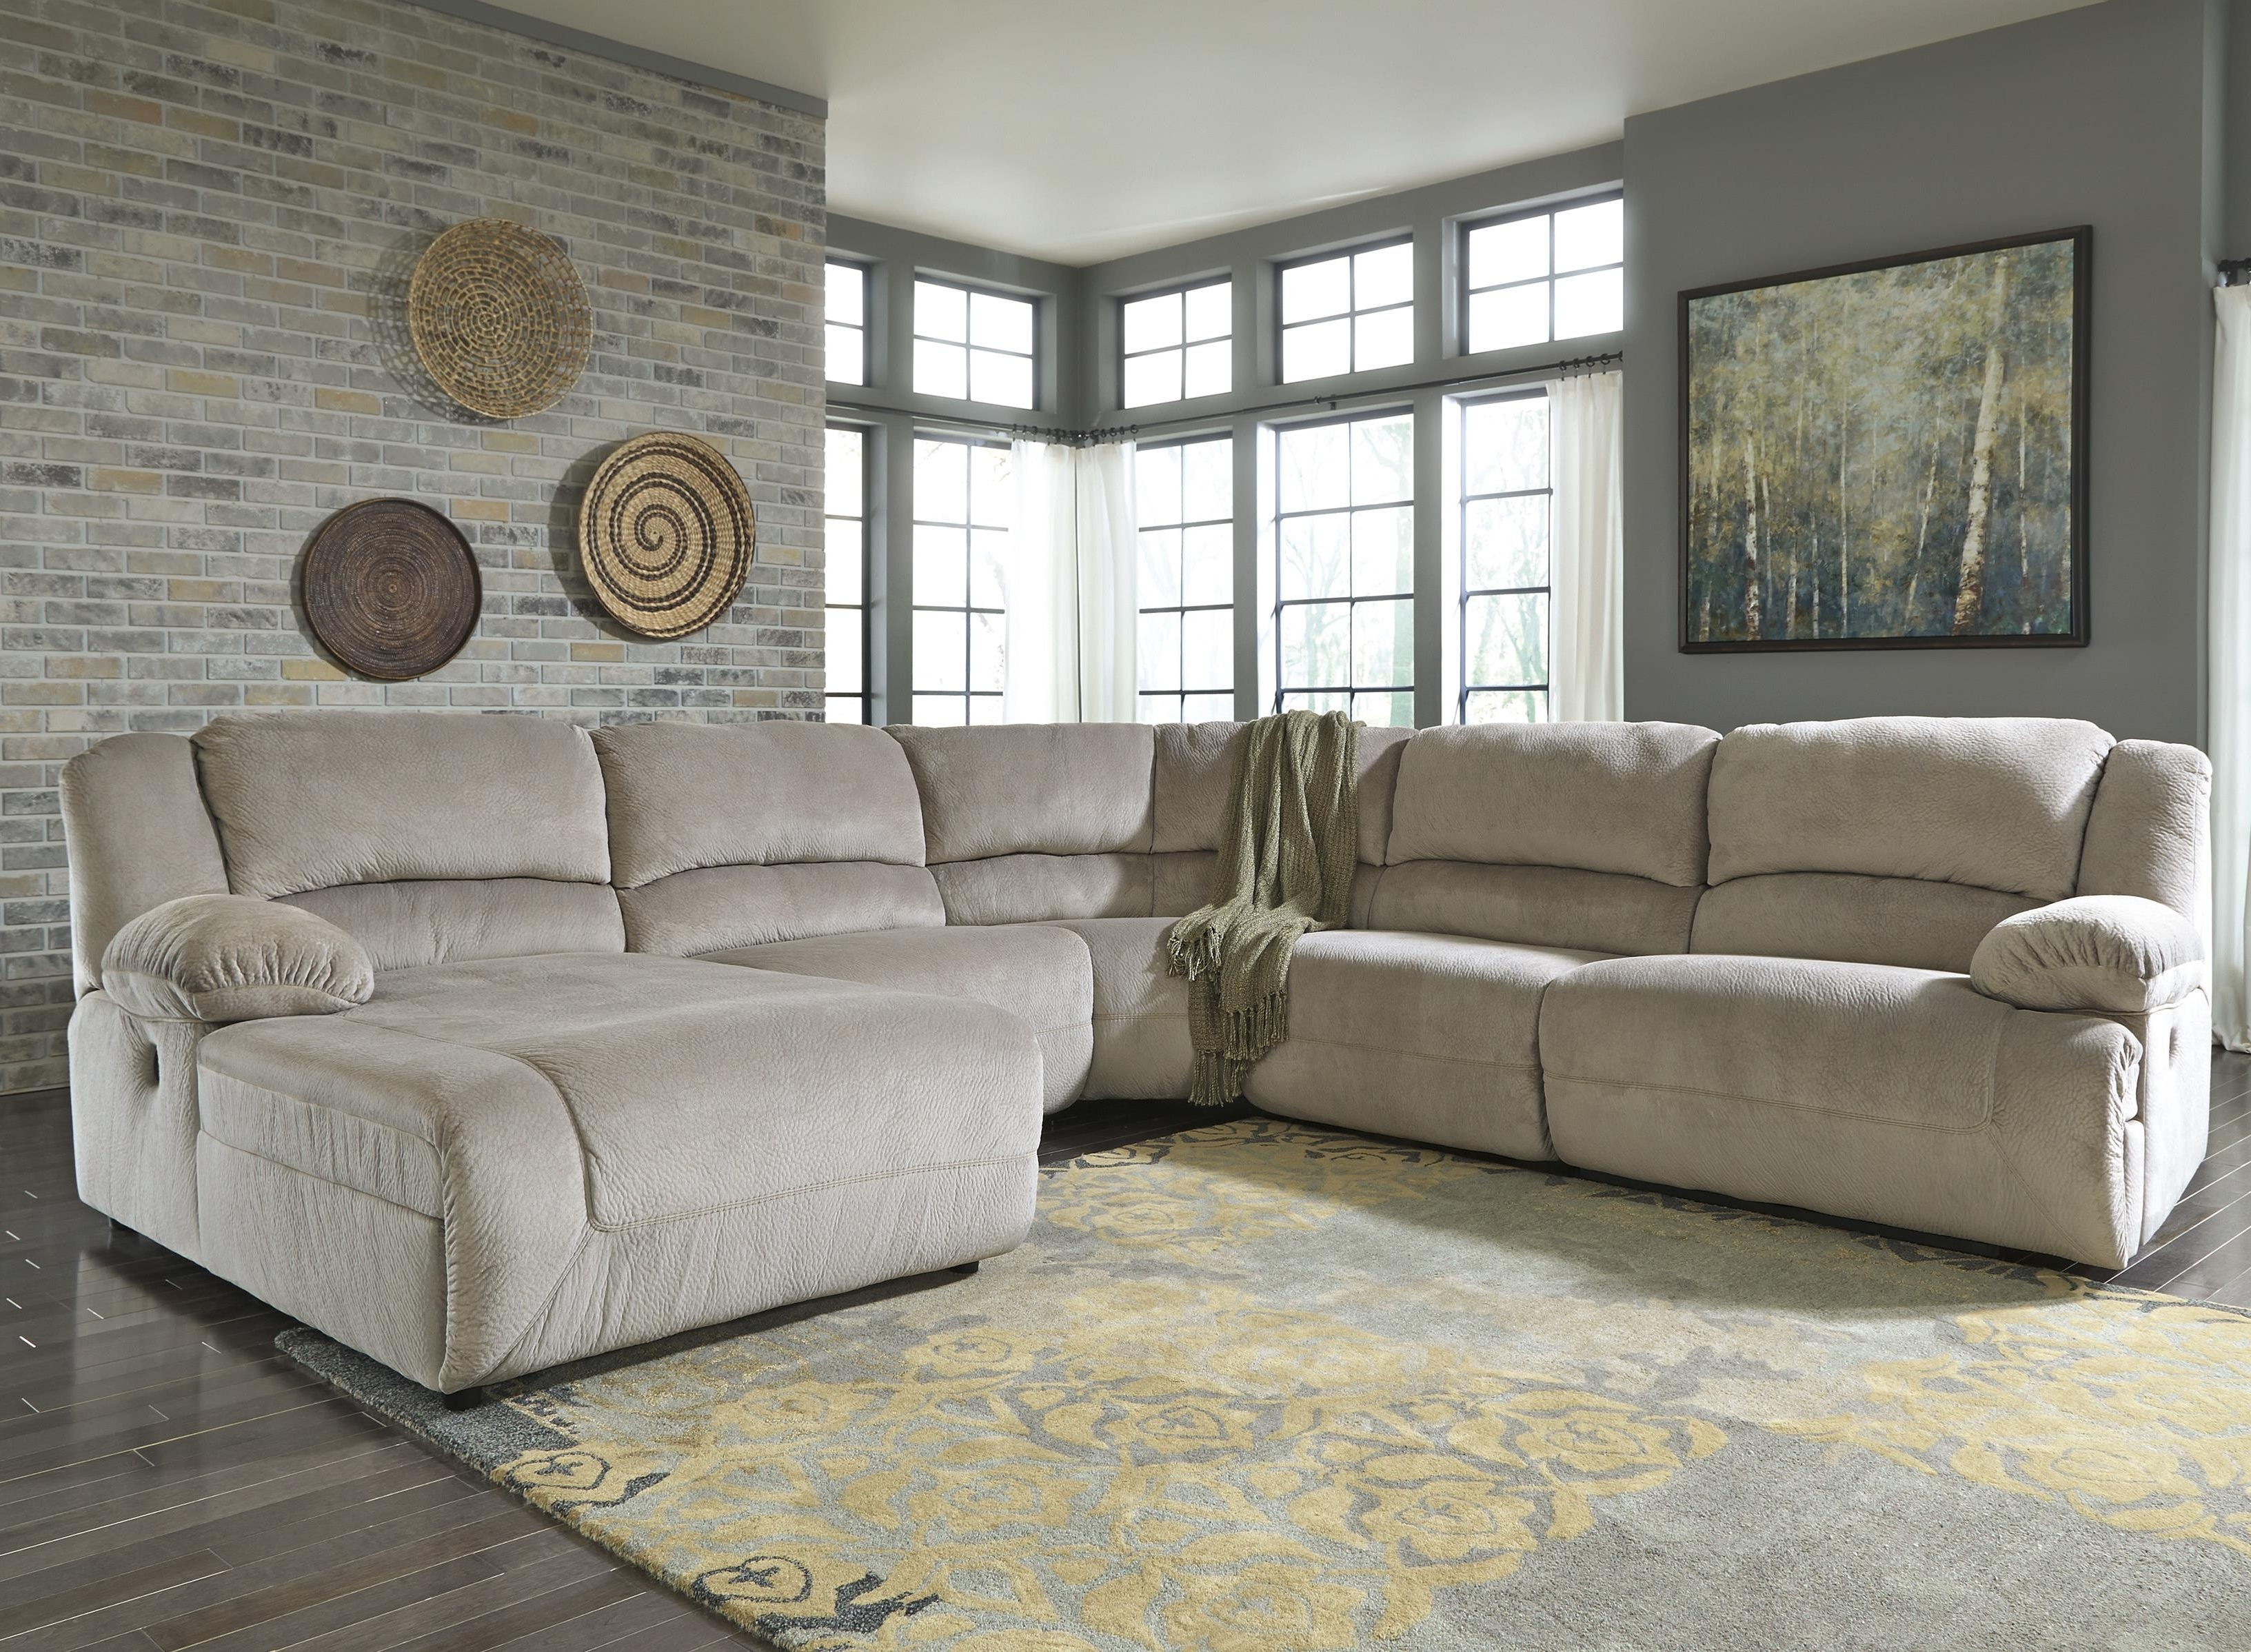 Harrisburg Pa Sectional Sofas Throughout Most Up To Date Power Reclining Sectional With Right Press Back Chaise (View 9 of 20)